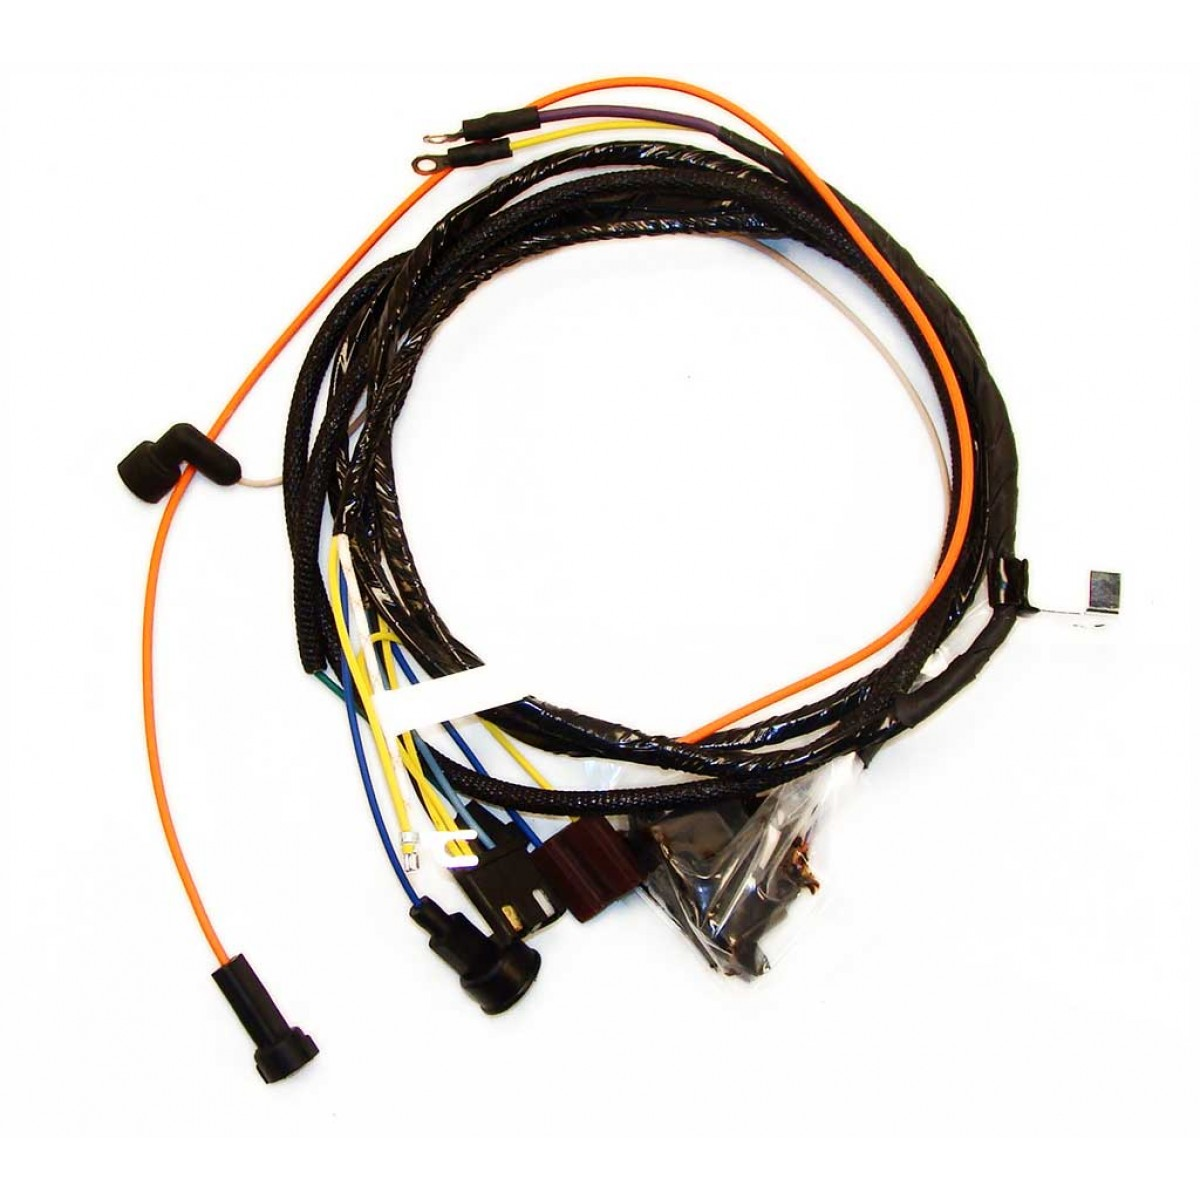 hight resolution of 1967 chevelle wiring harness big block 1967 chevelle wiring harness 1967 chevelle wiring diagram 1967 chevelle